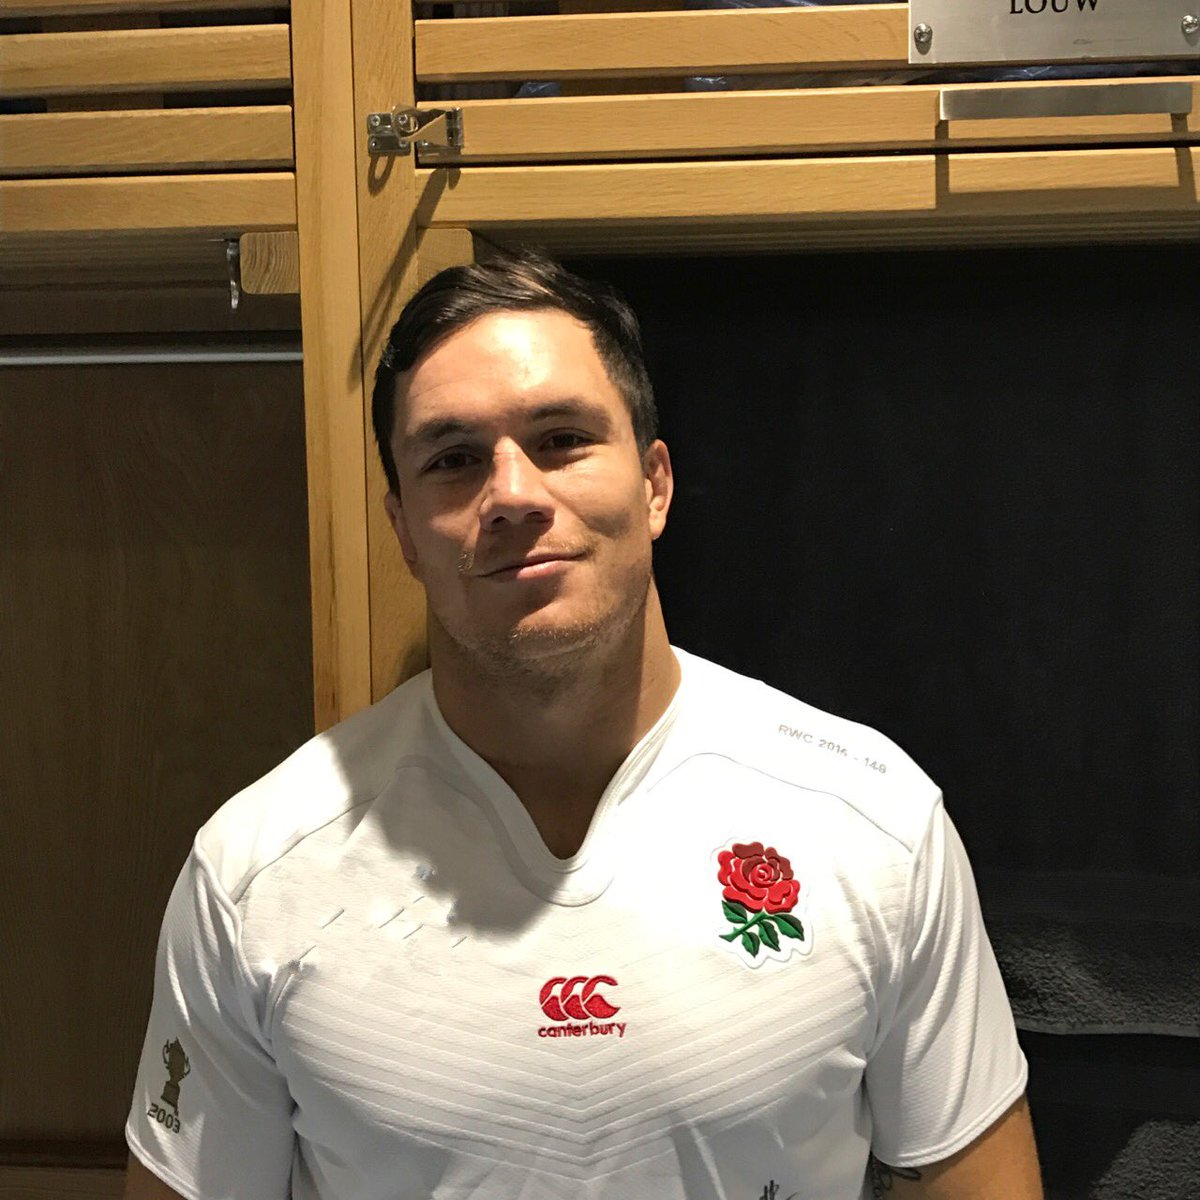 Good to see @FloLouw is a man of his word! #ProudEnglishman https://t.co/HD82fRzC2D